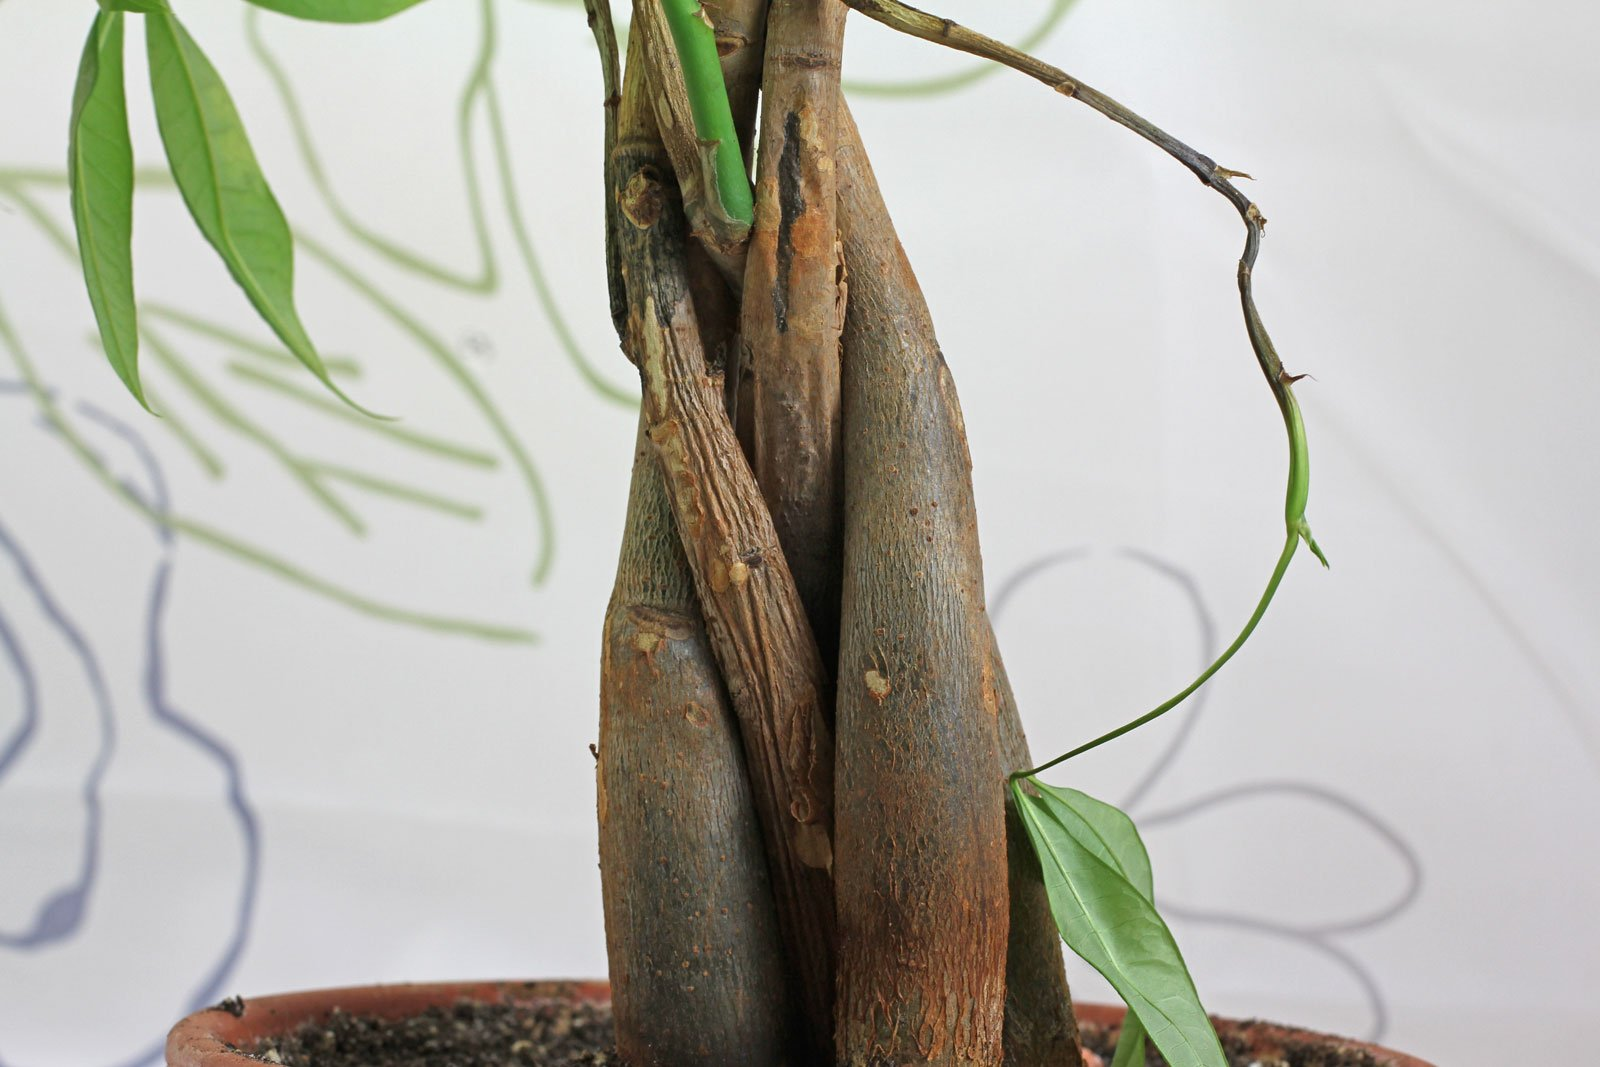 Pachira with dried up stem